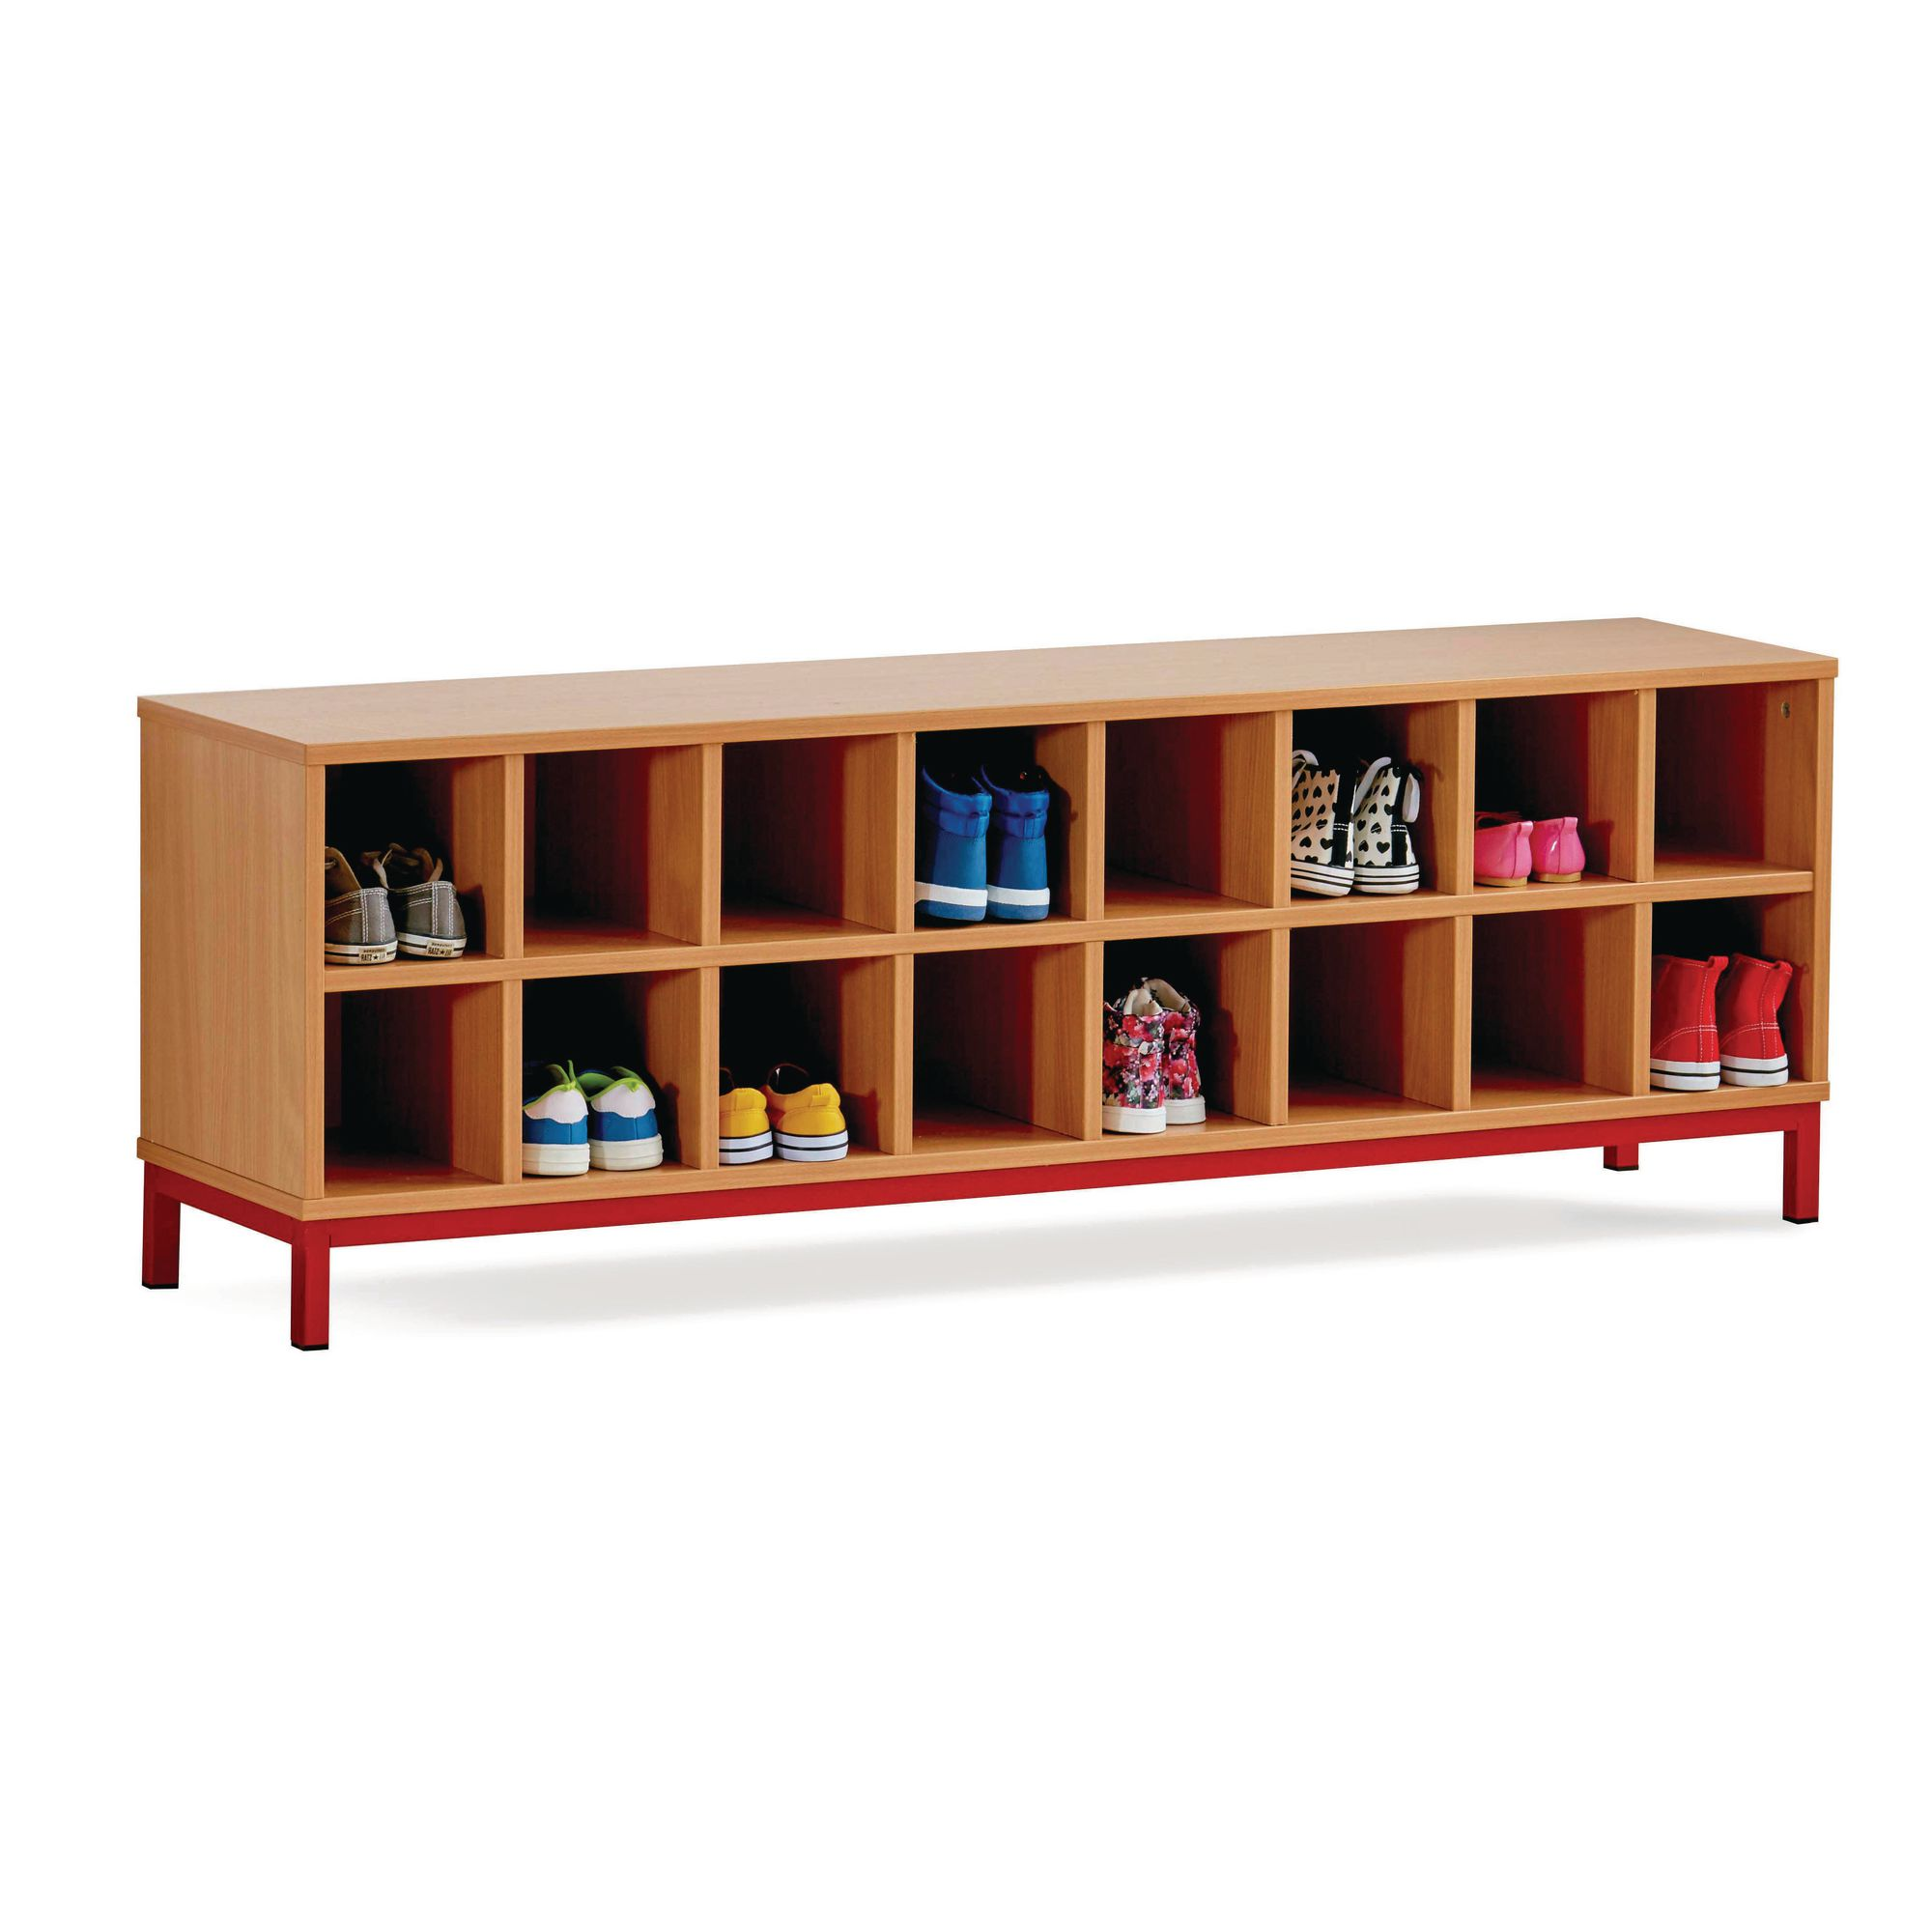 Beech 16 Open Bench Red